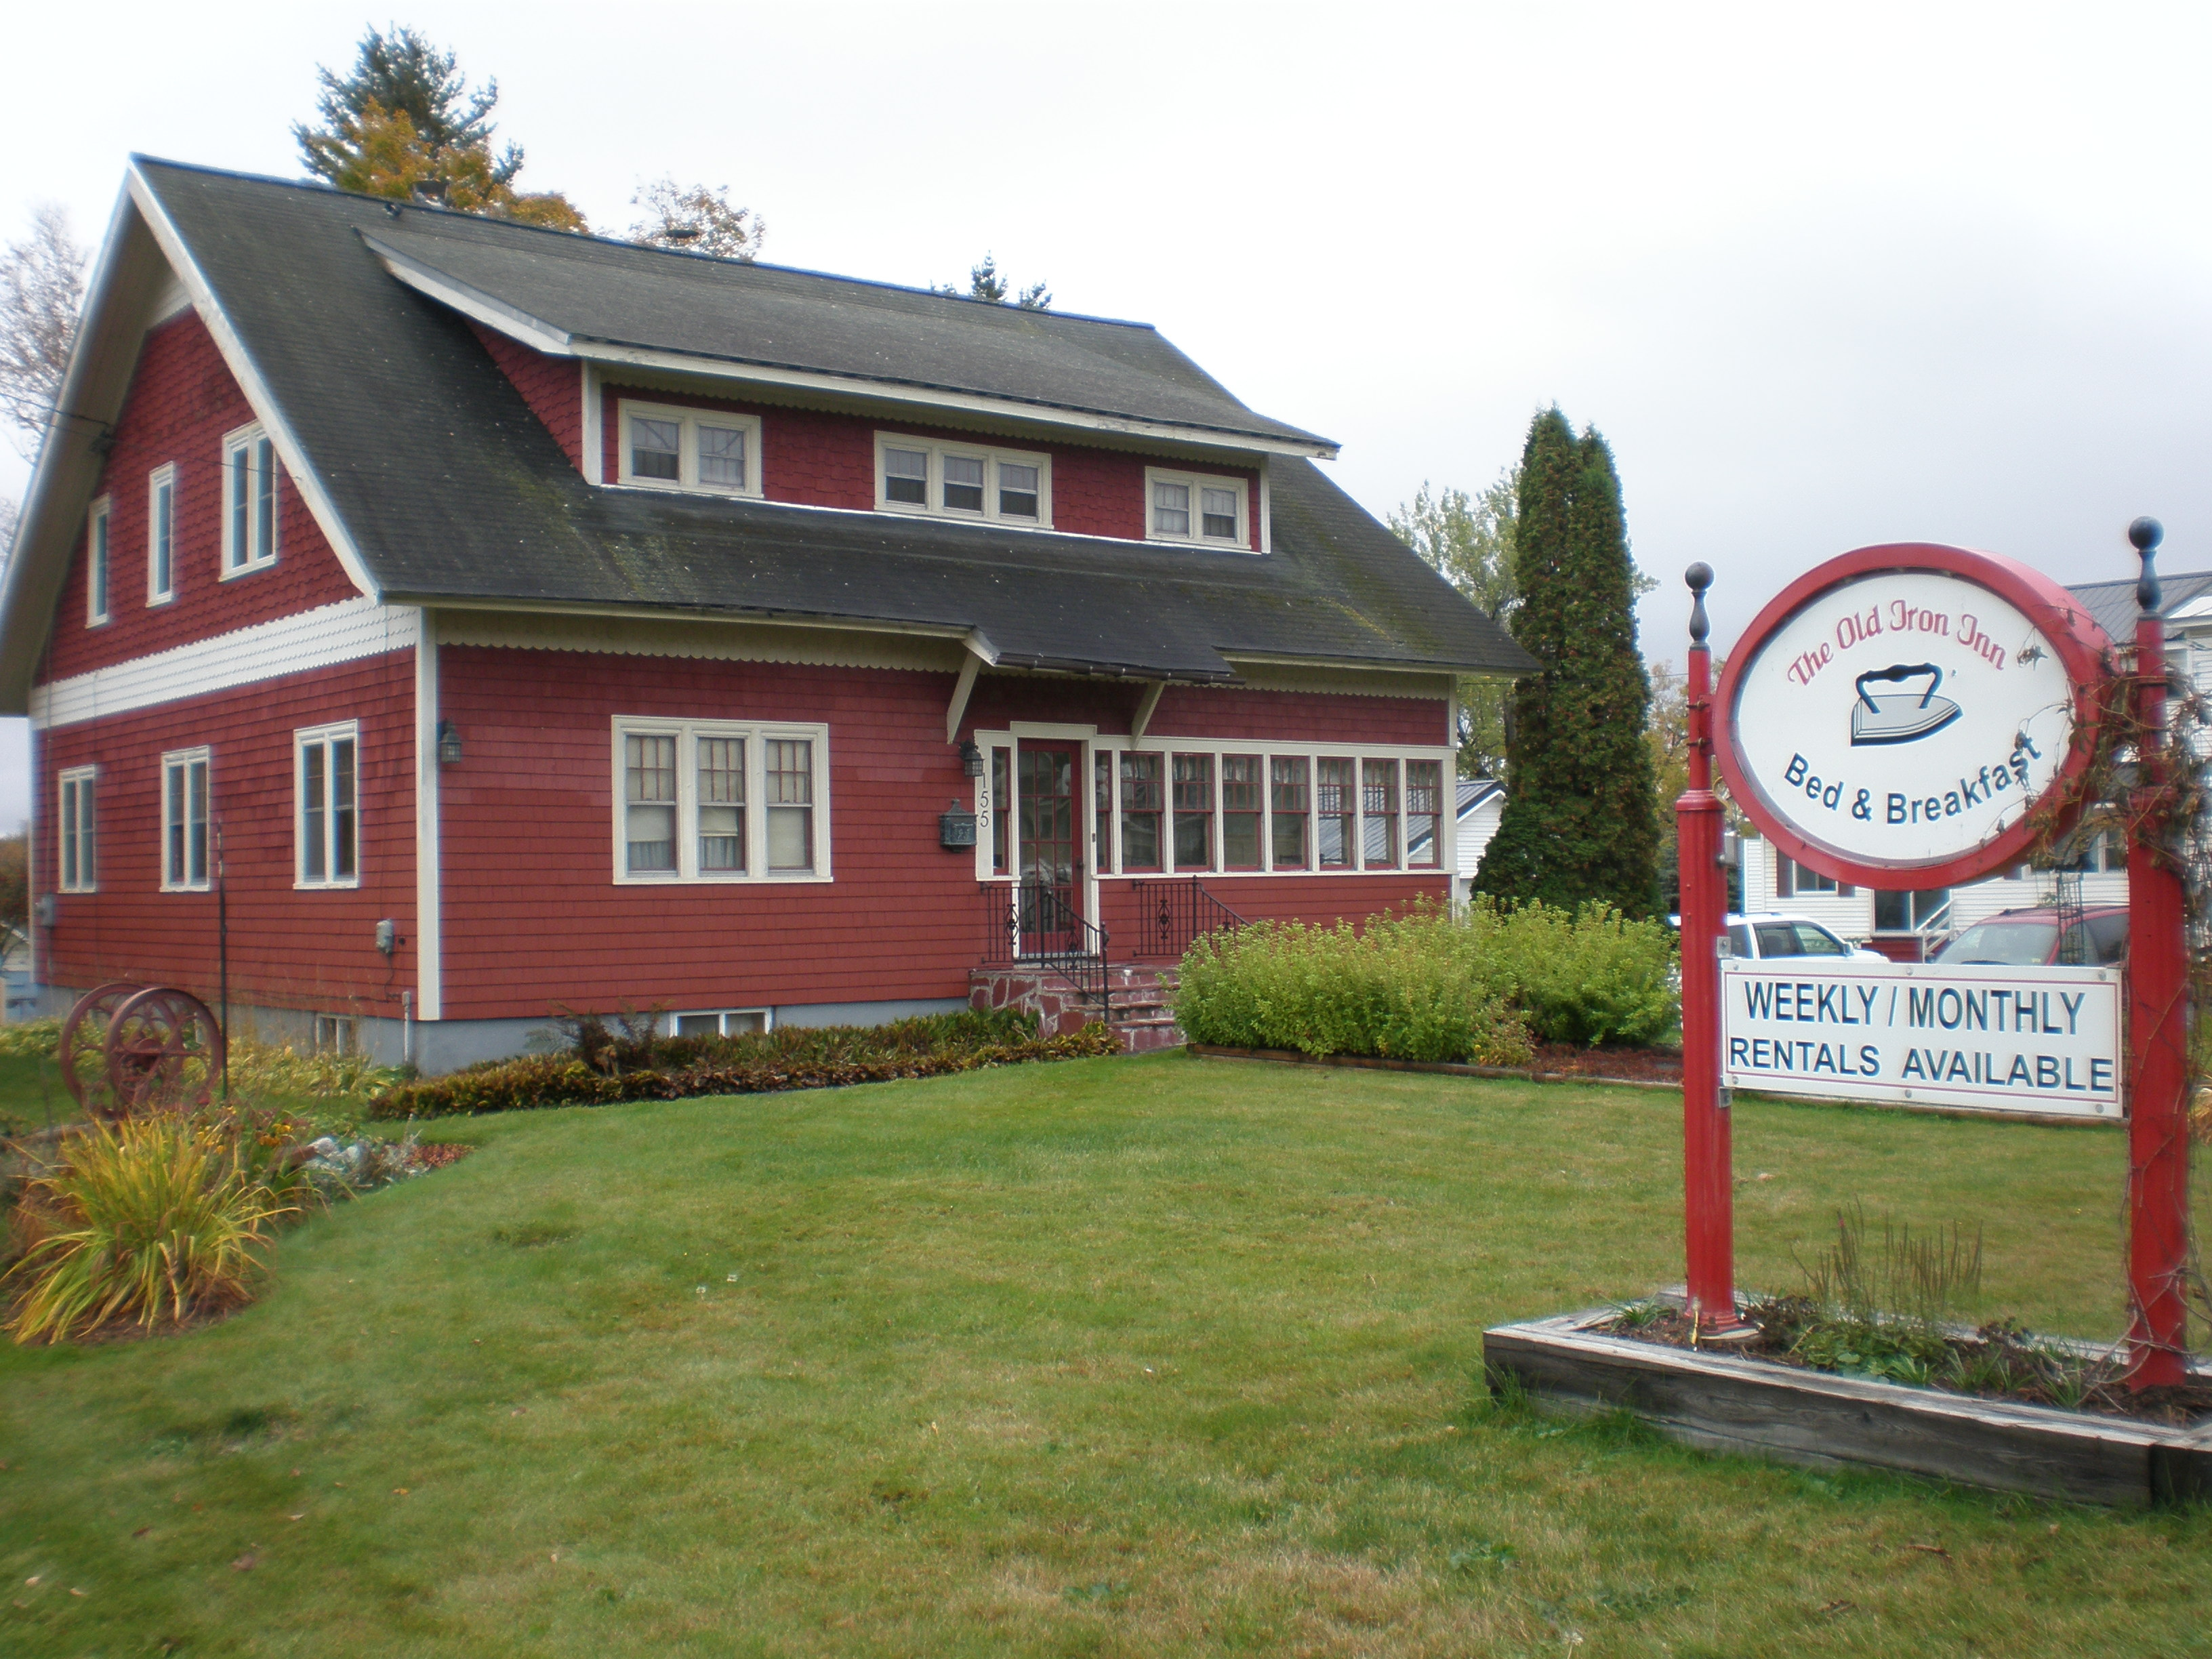 Old Iron Inn Bed and Breakfast